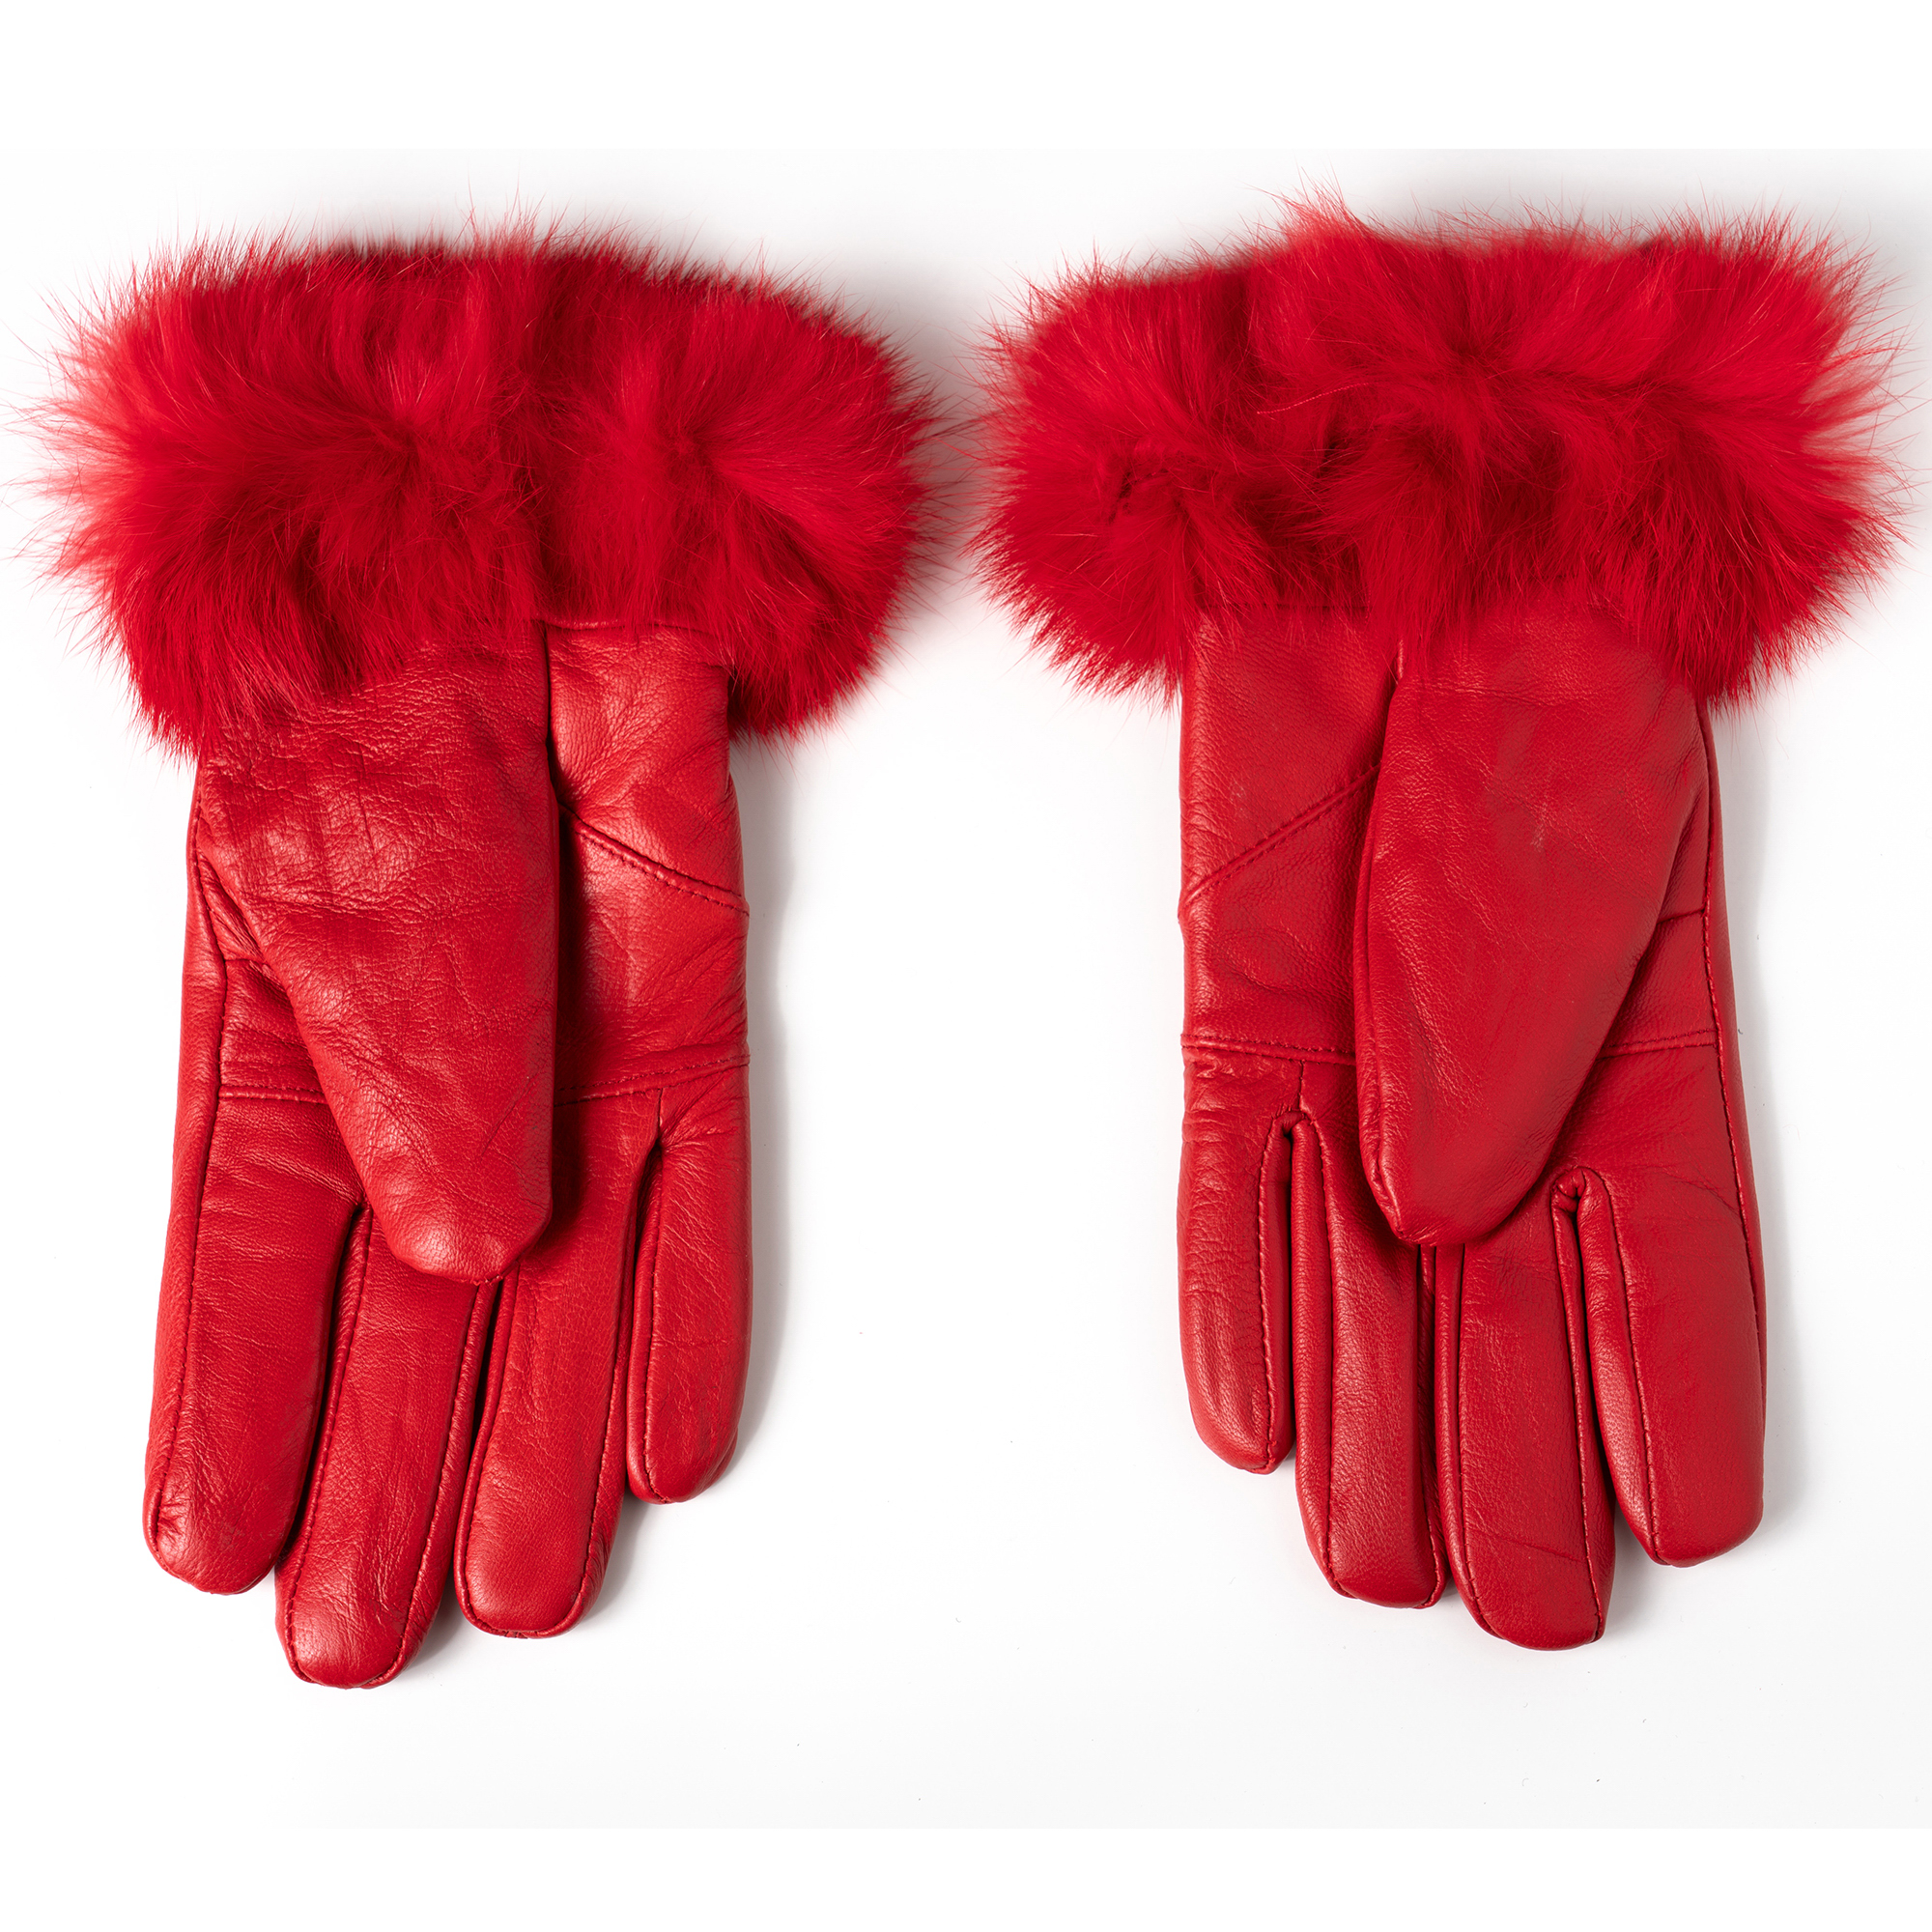 Alpine-Swiss-Womens-Dressy-Gloves-Genuine-Leather-Thermal-Lining-Fur-Trim-Cuff thumbnail 34